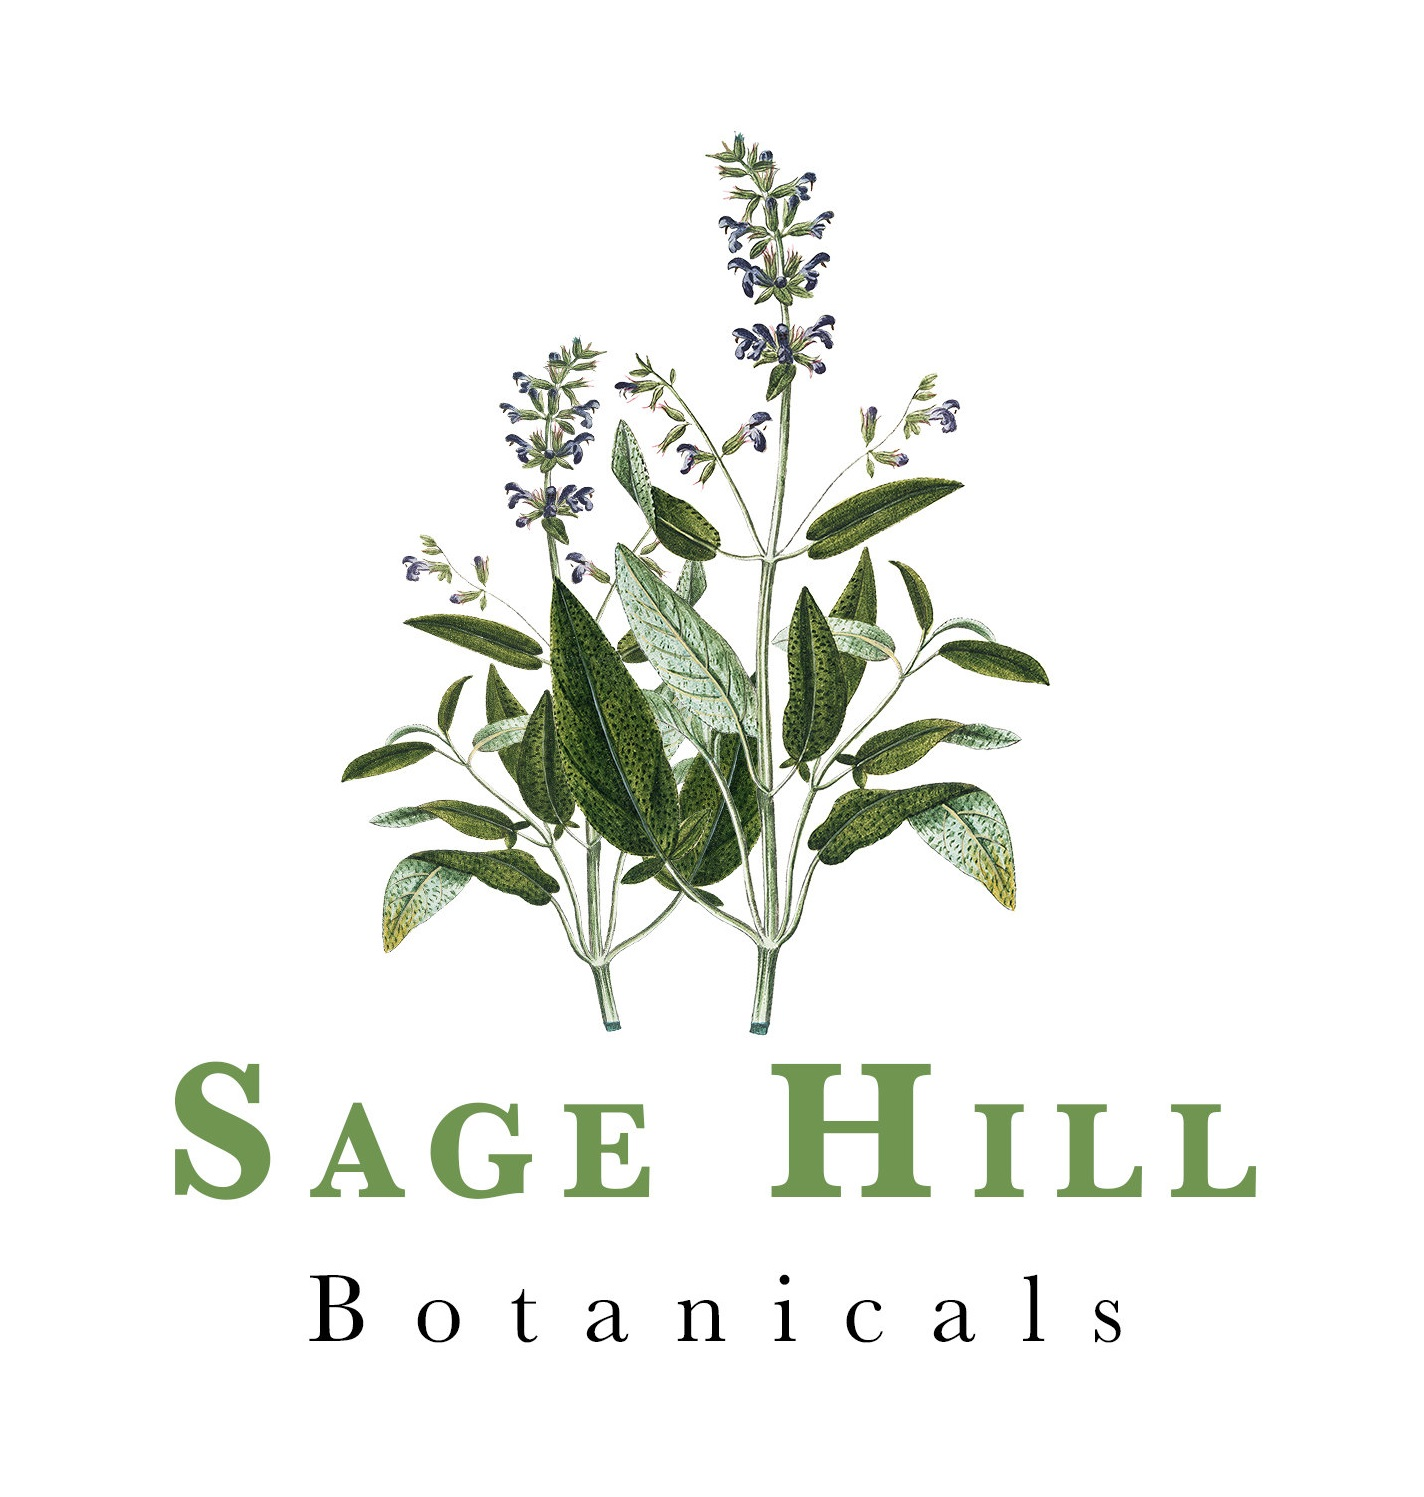 Logo for Sage Hill Botanicals, Herbs, Spices, and Plant Skincare and Makeup